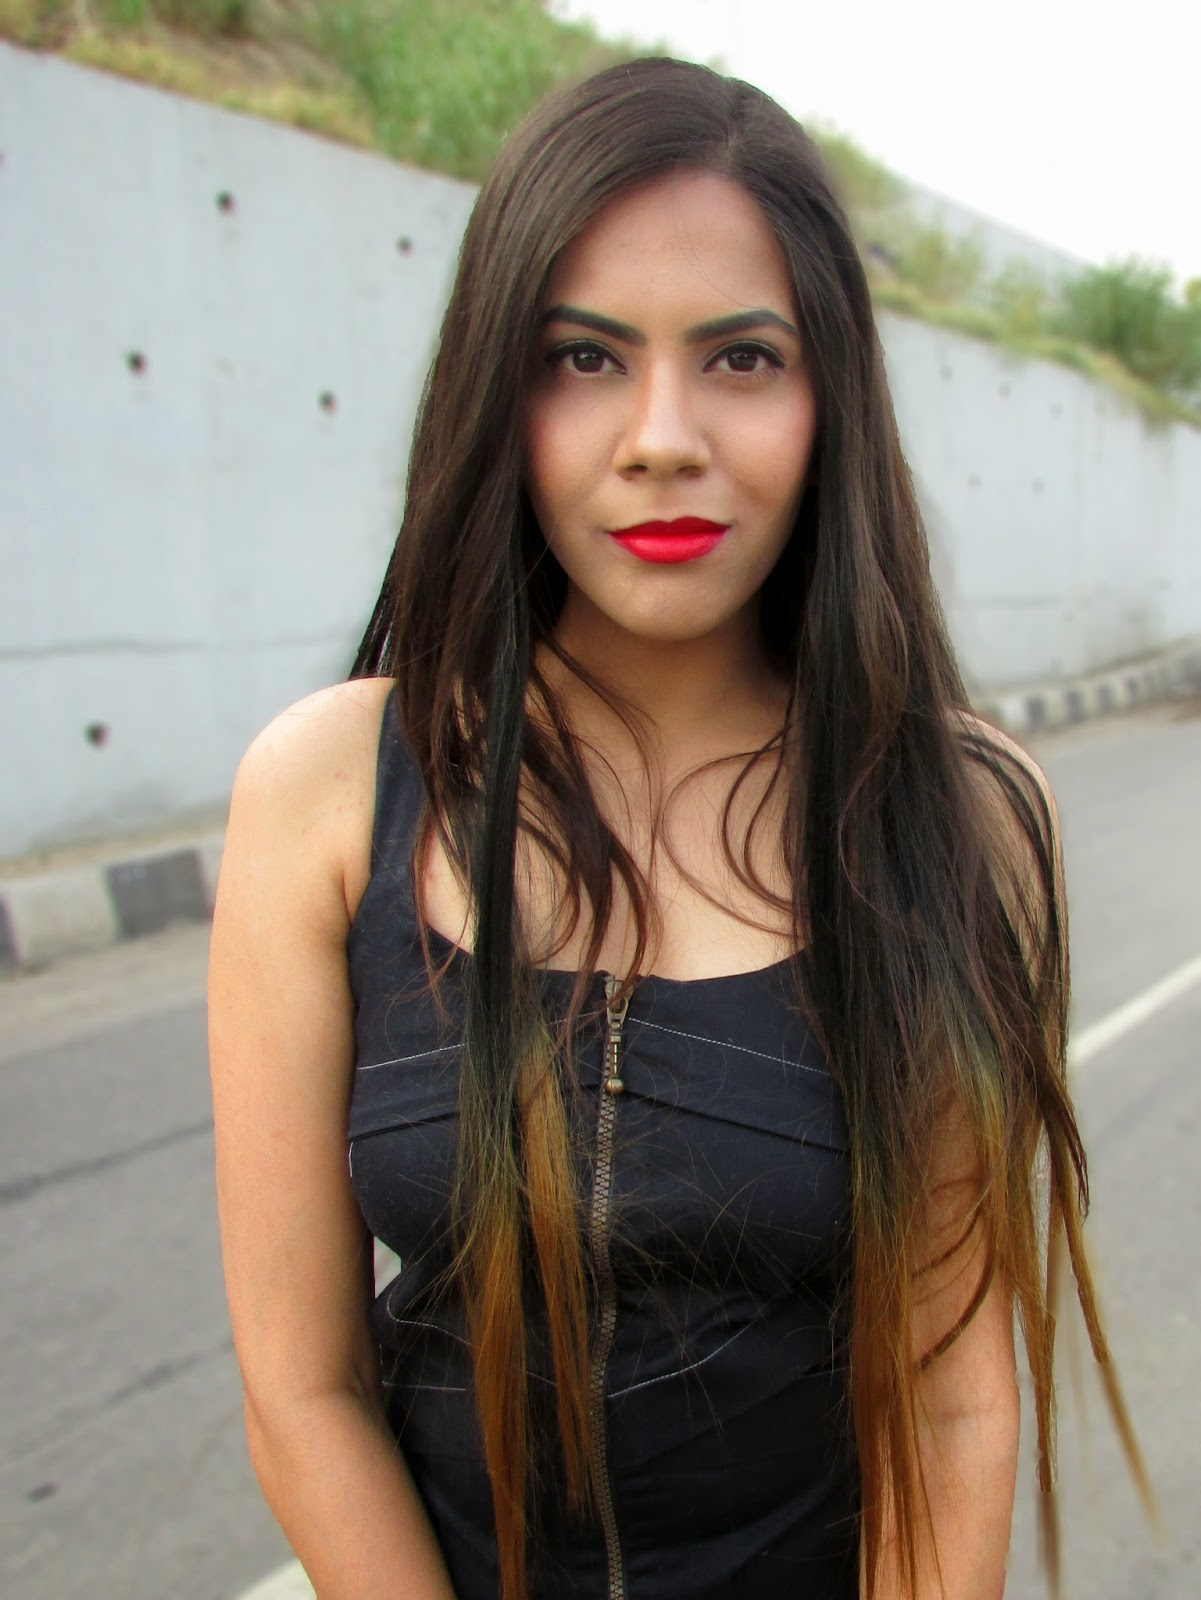 best red lipstick,red lipstick , lips , perfect red lipstick , dior , dior review , dior red lipstick review, dior ange bleu , dioe ange blew review, dior ange blue review price , dioe ange bleu price in india, dior ange blue review india , dior india, dior makeup , dior price india, dior lipstick price india